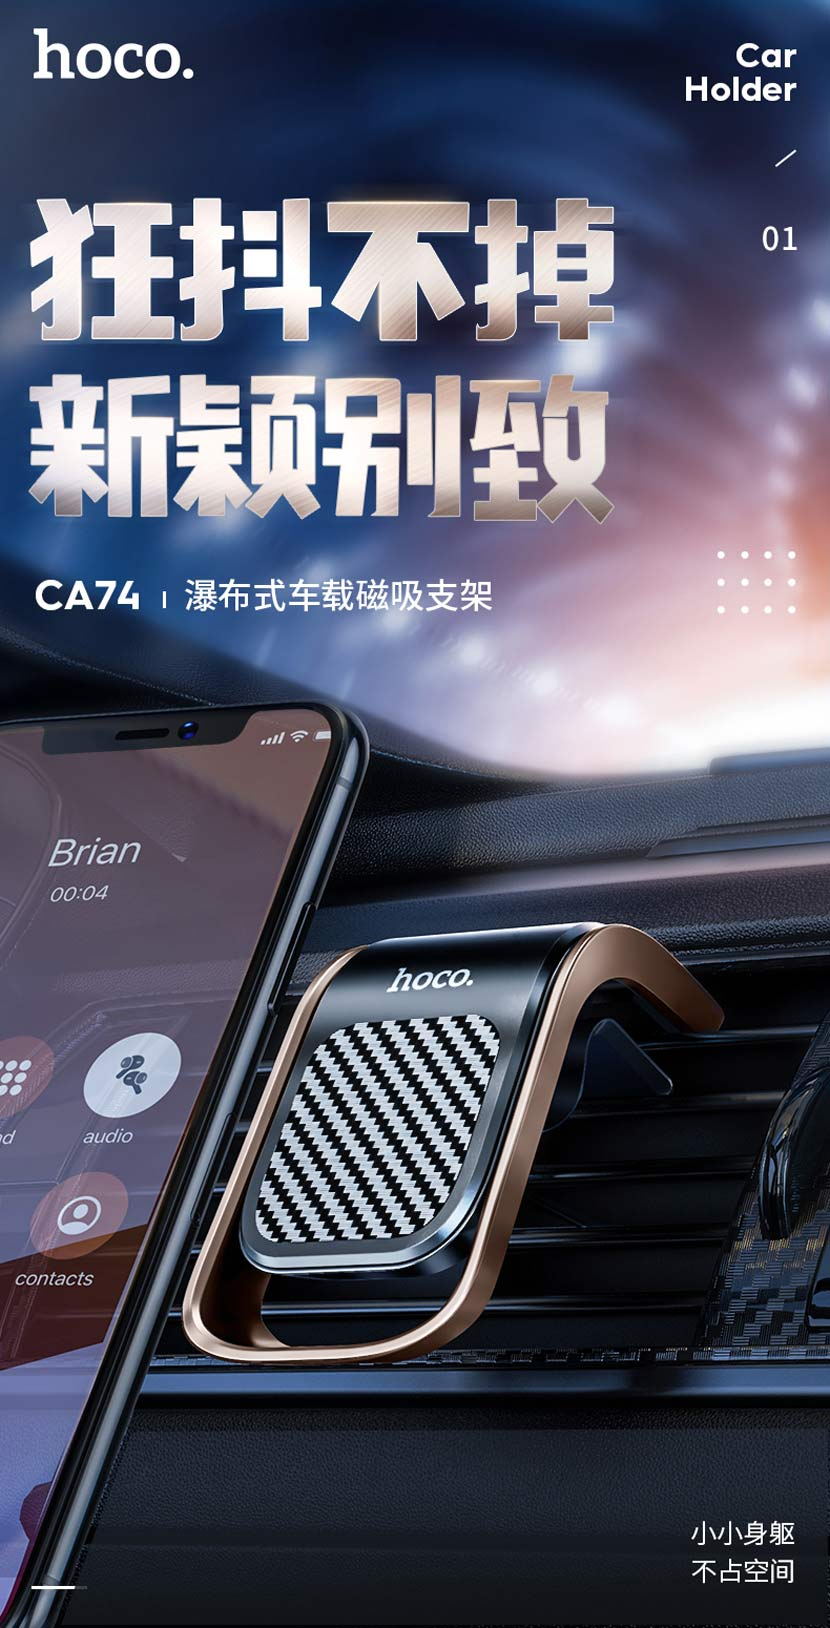 hoco news ca74 universe air outlet magnetic car holder mini cn